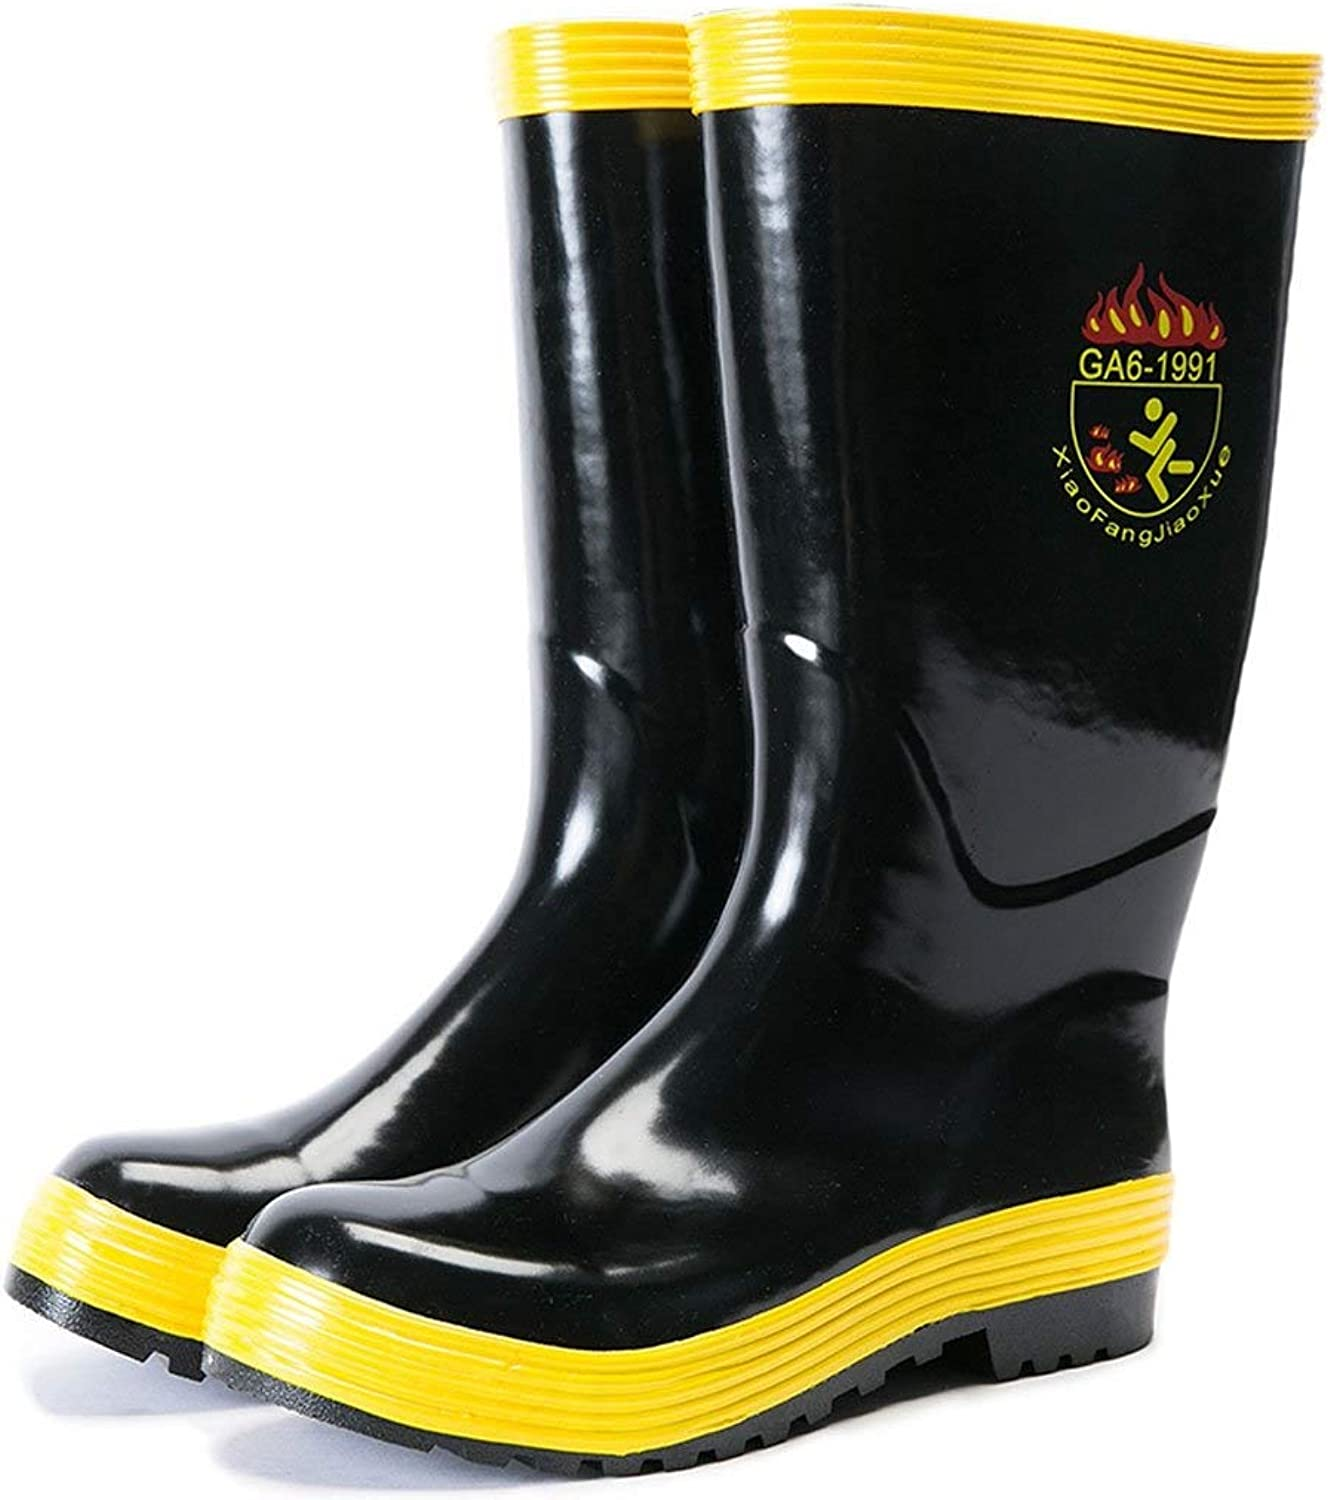 HYZSX Rain Boots, High Boots, Spring and Autumn Rubber shoes, Insulated Electric Water shoes, Predection Rain Boots